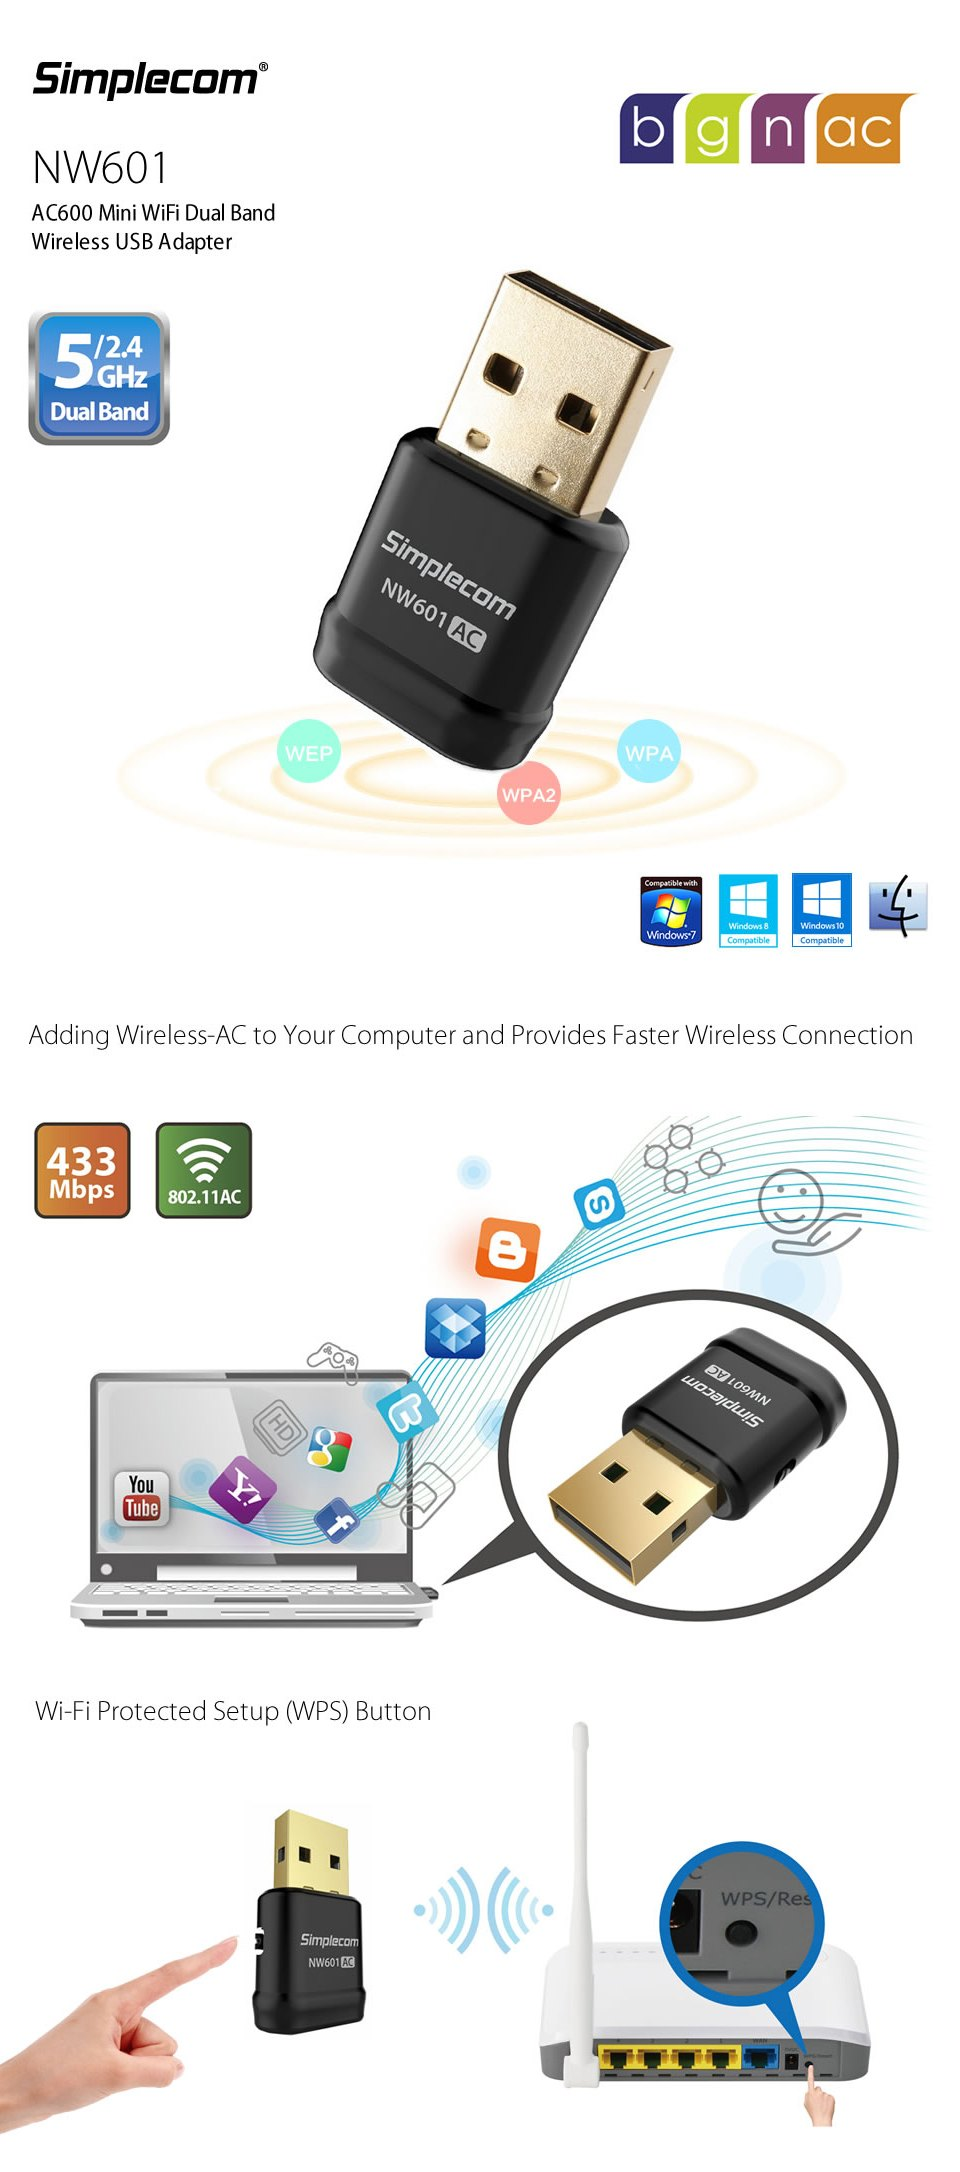 Simplecom NW601 AC600 Mini Wi-Fi Dual Band Wireless USB Adapter features